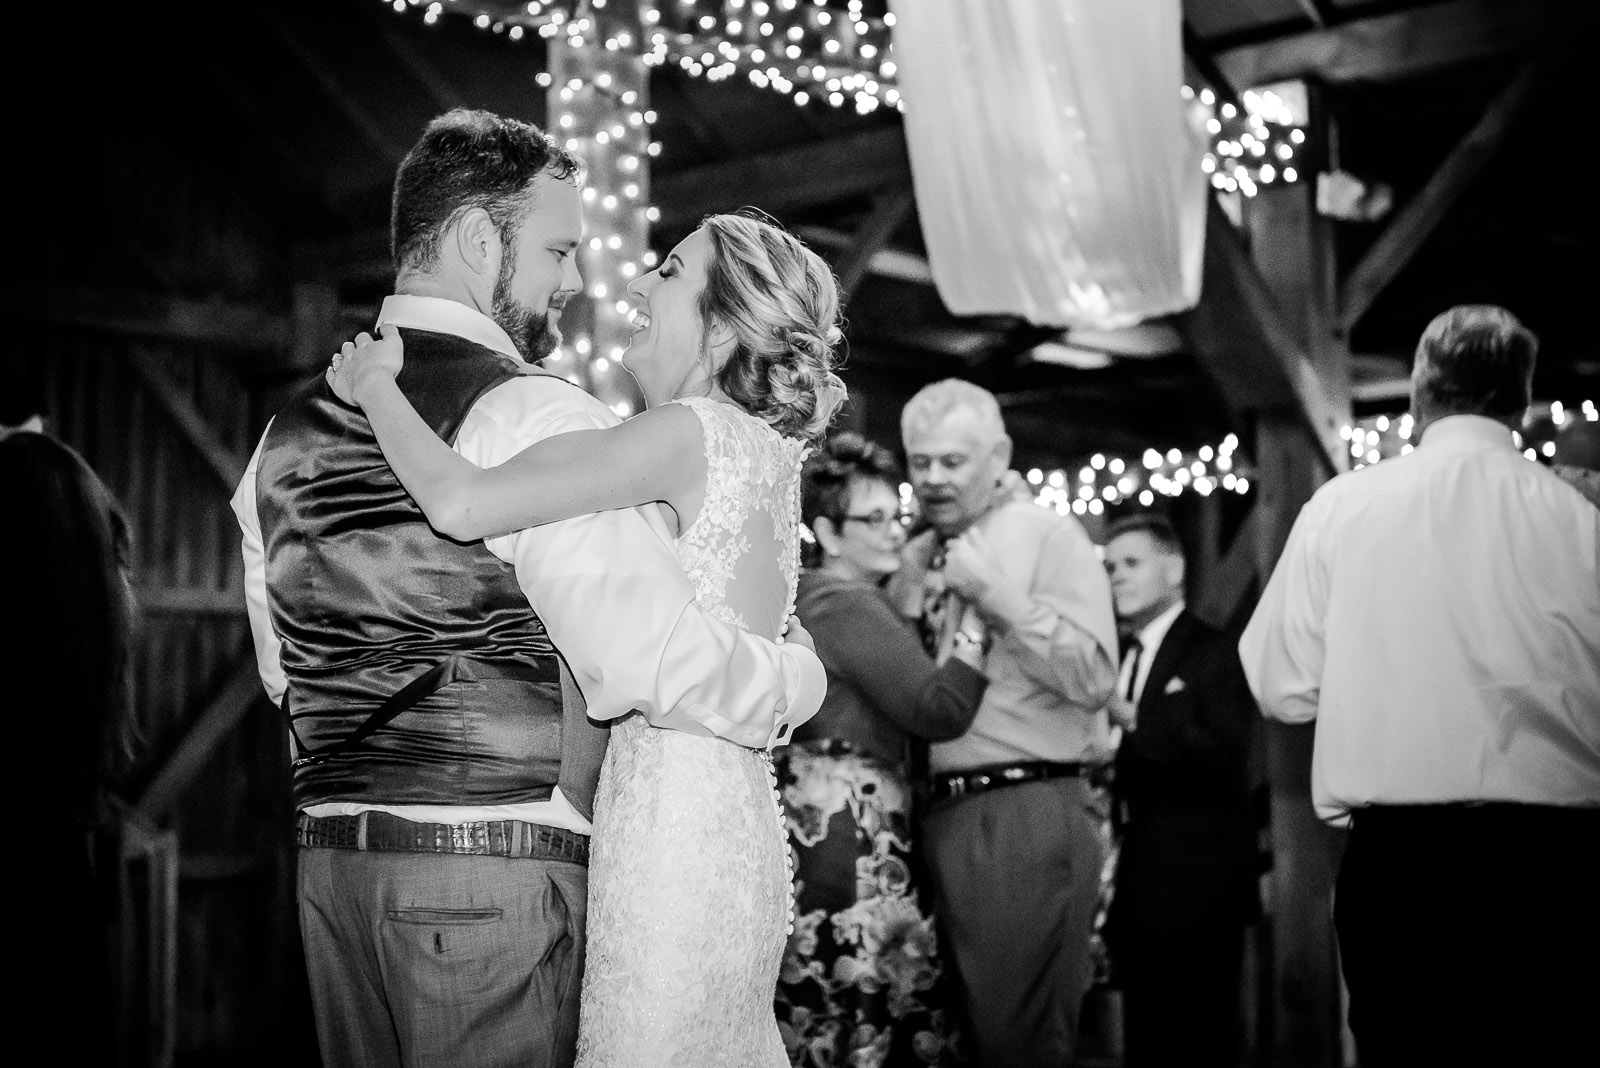 Eric_and_Christy_Photography_Blog_Wedding_Kelly_Matt-80